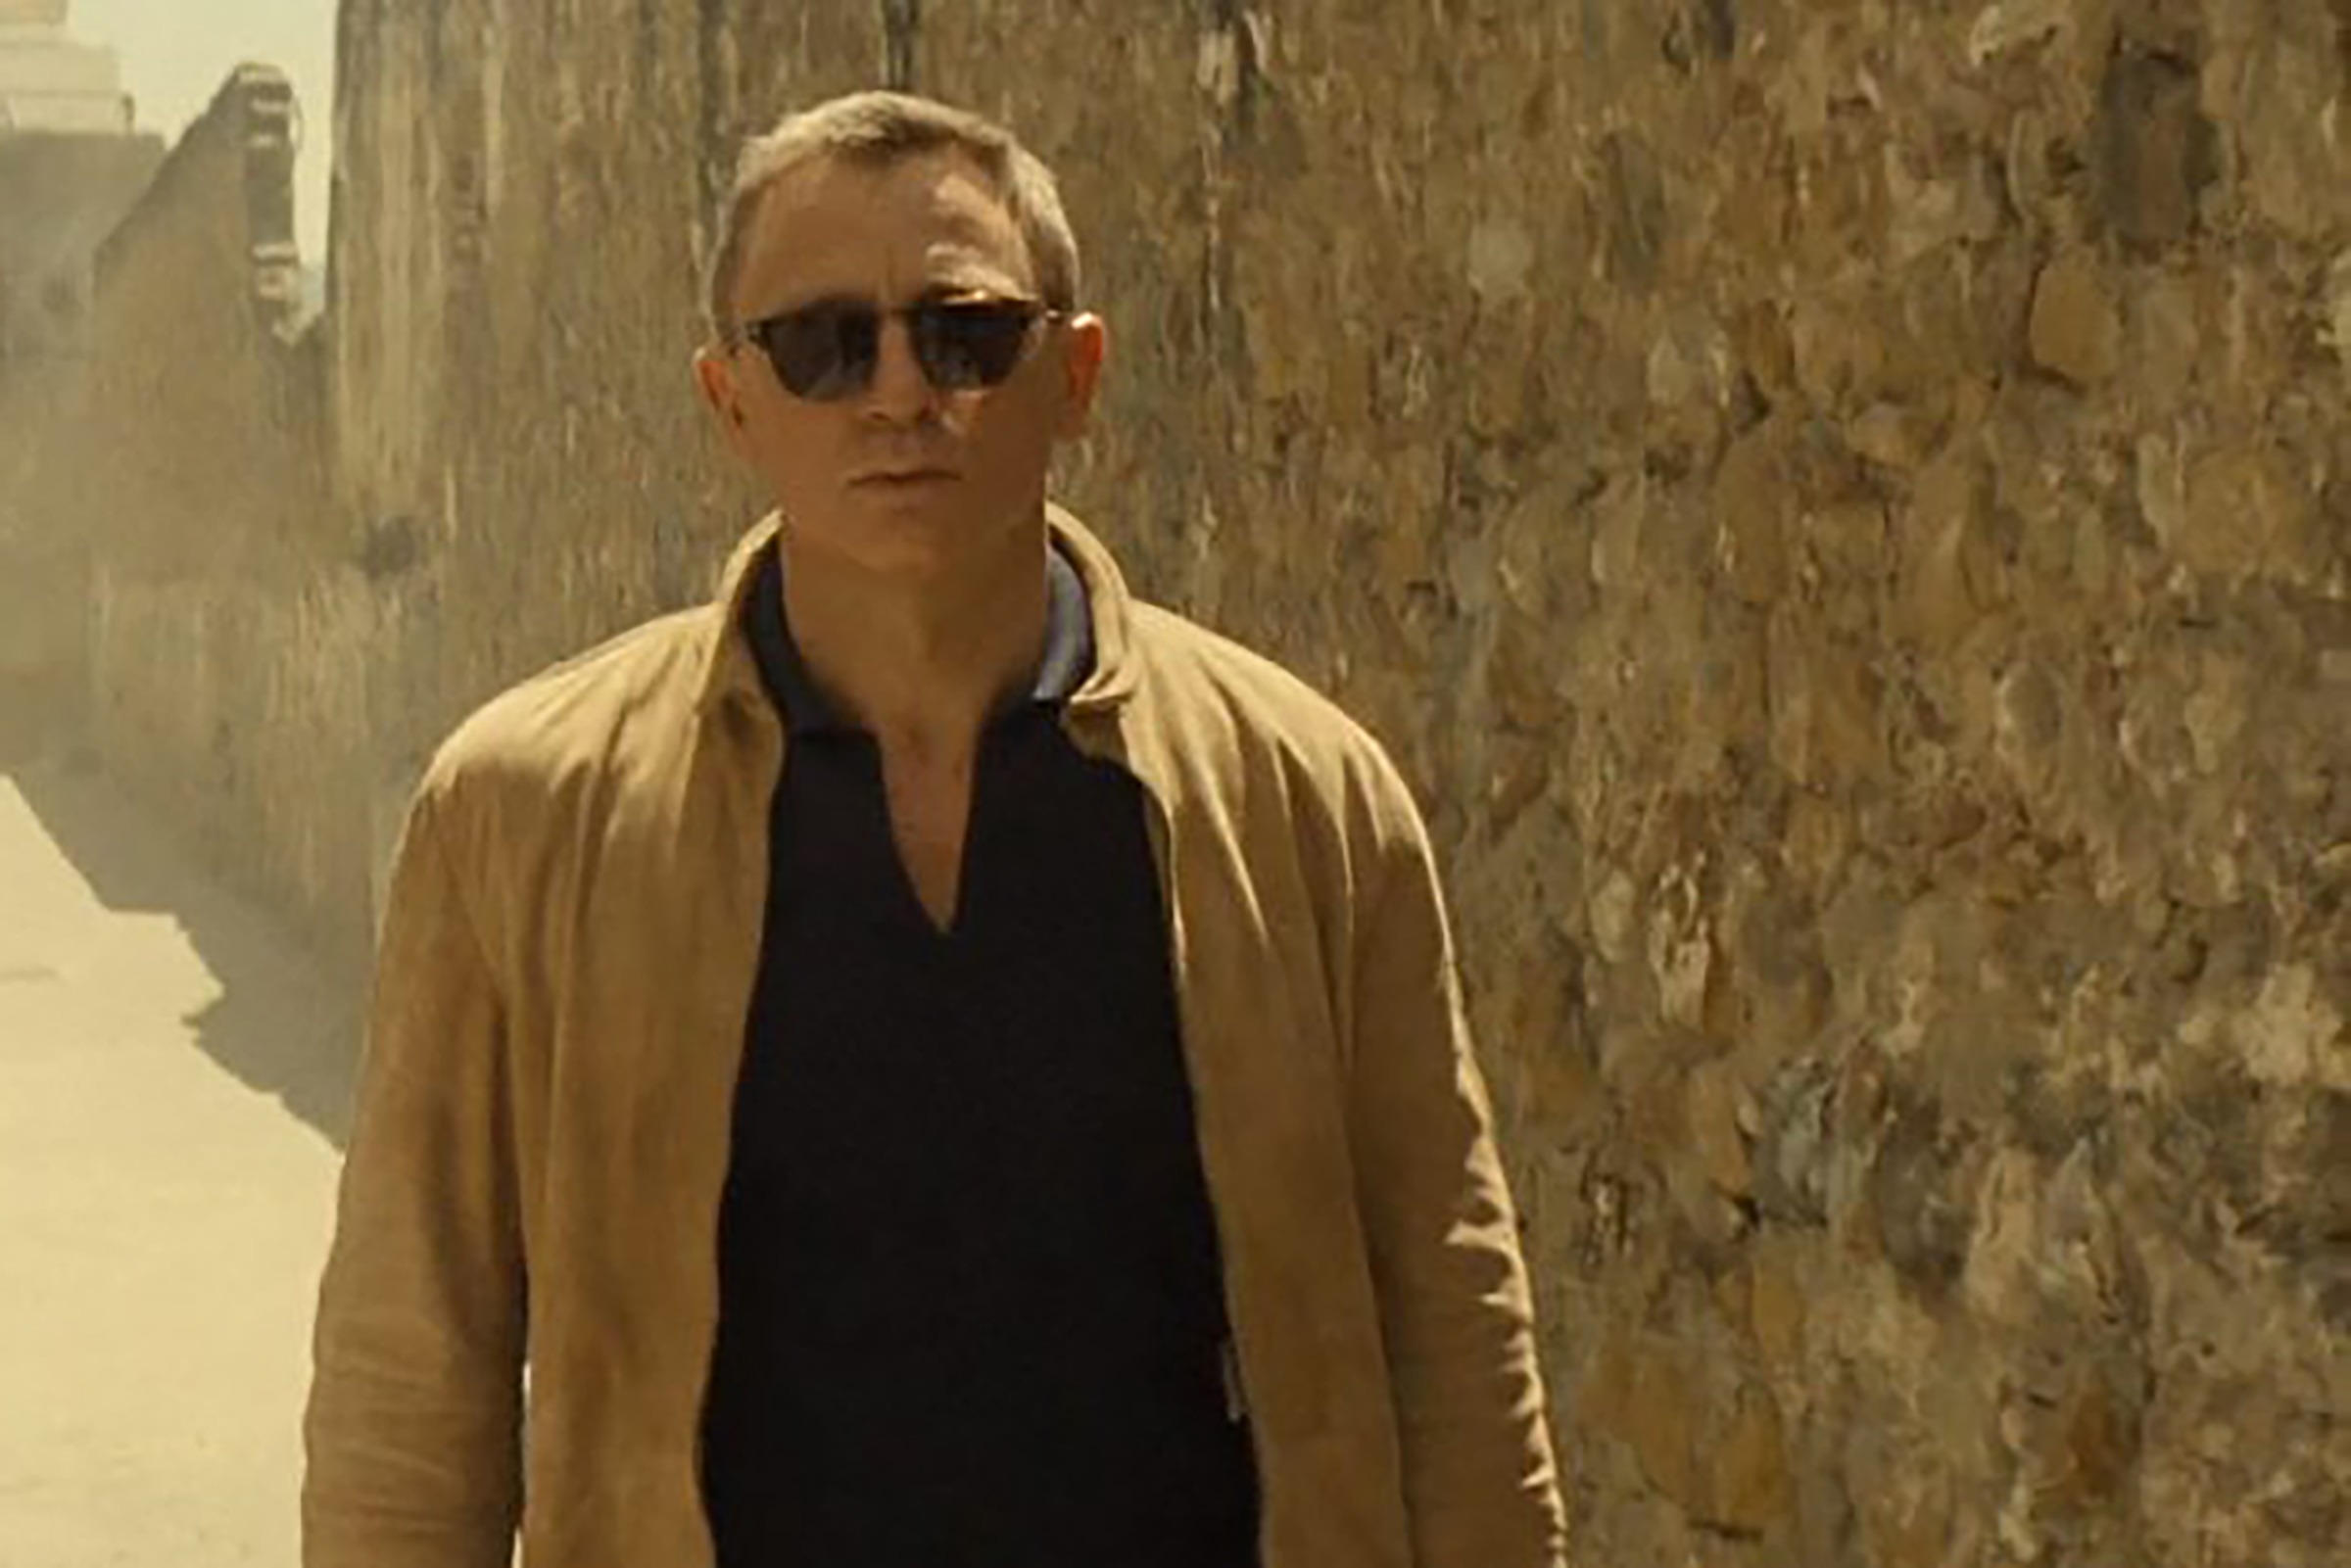 Daniel Craig rocks a tan suede jacket from Matchless in Spectre.